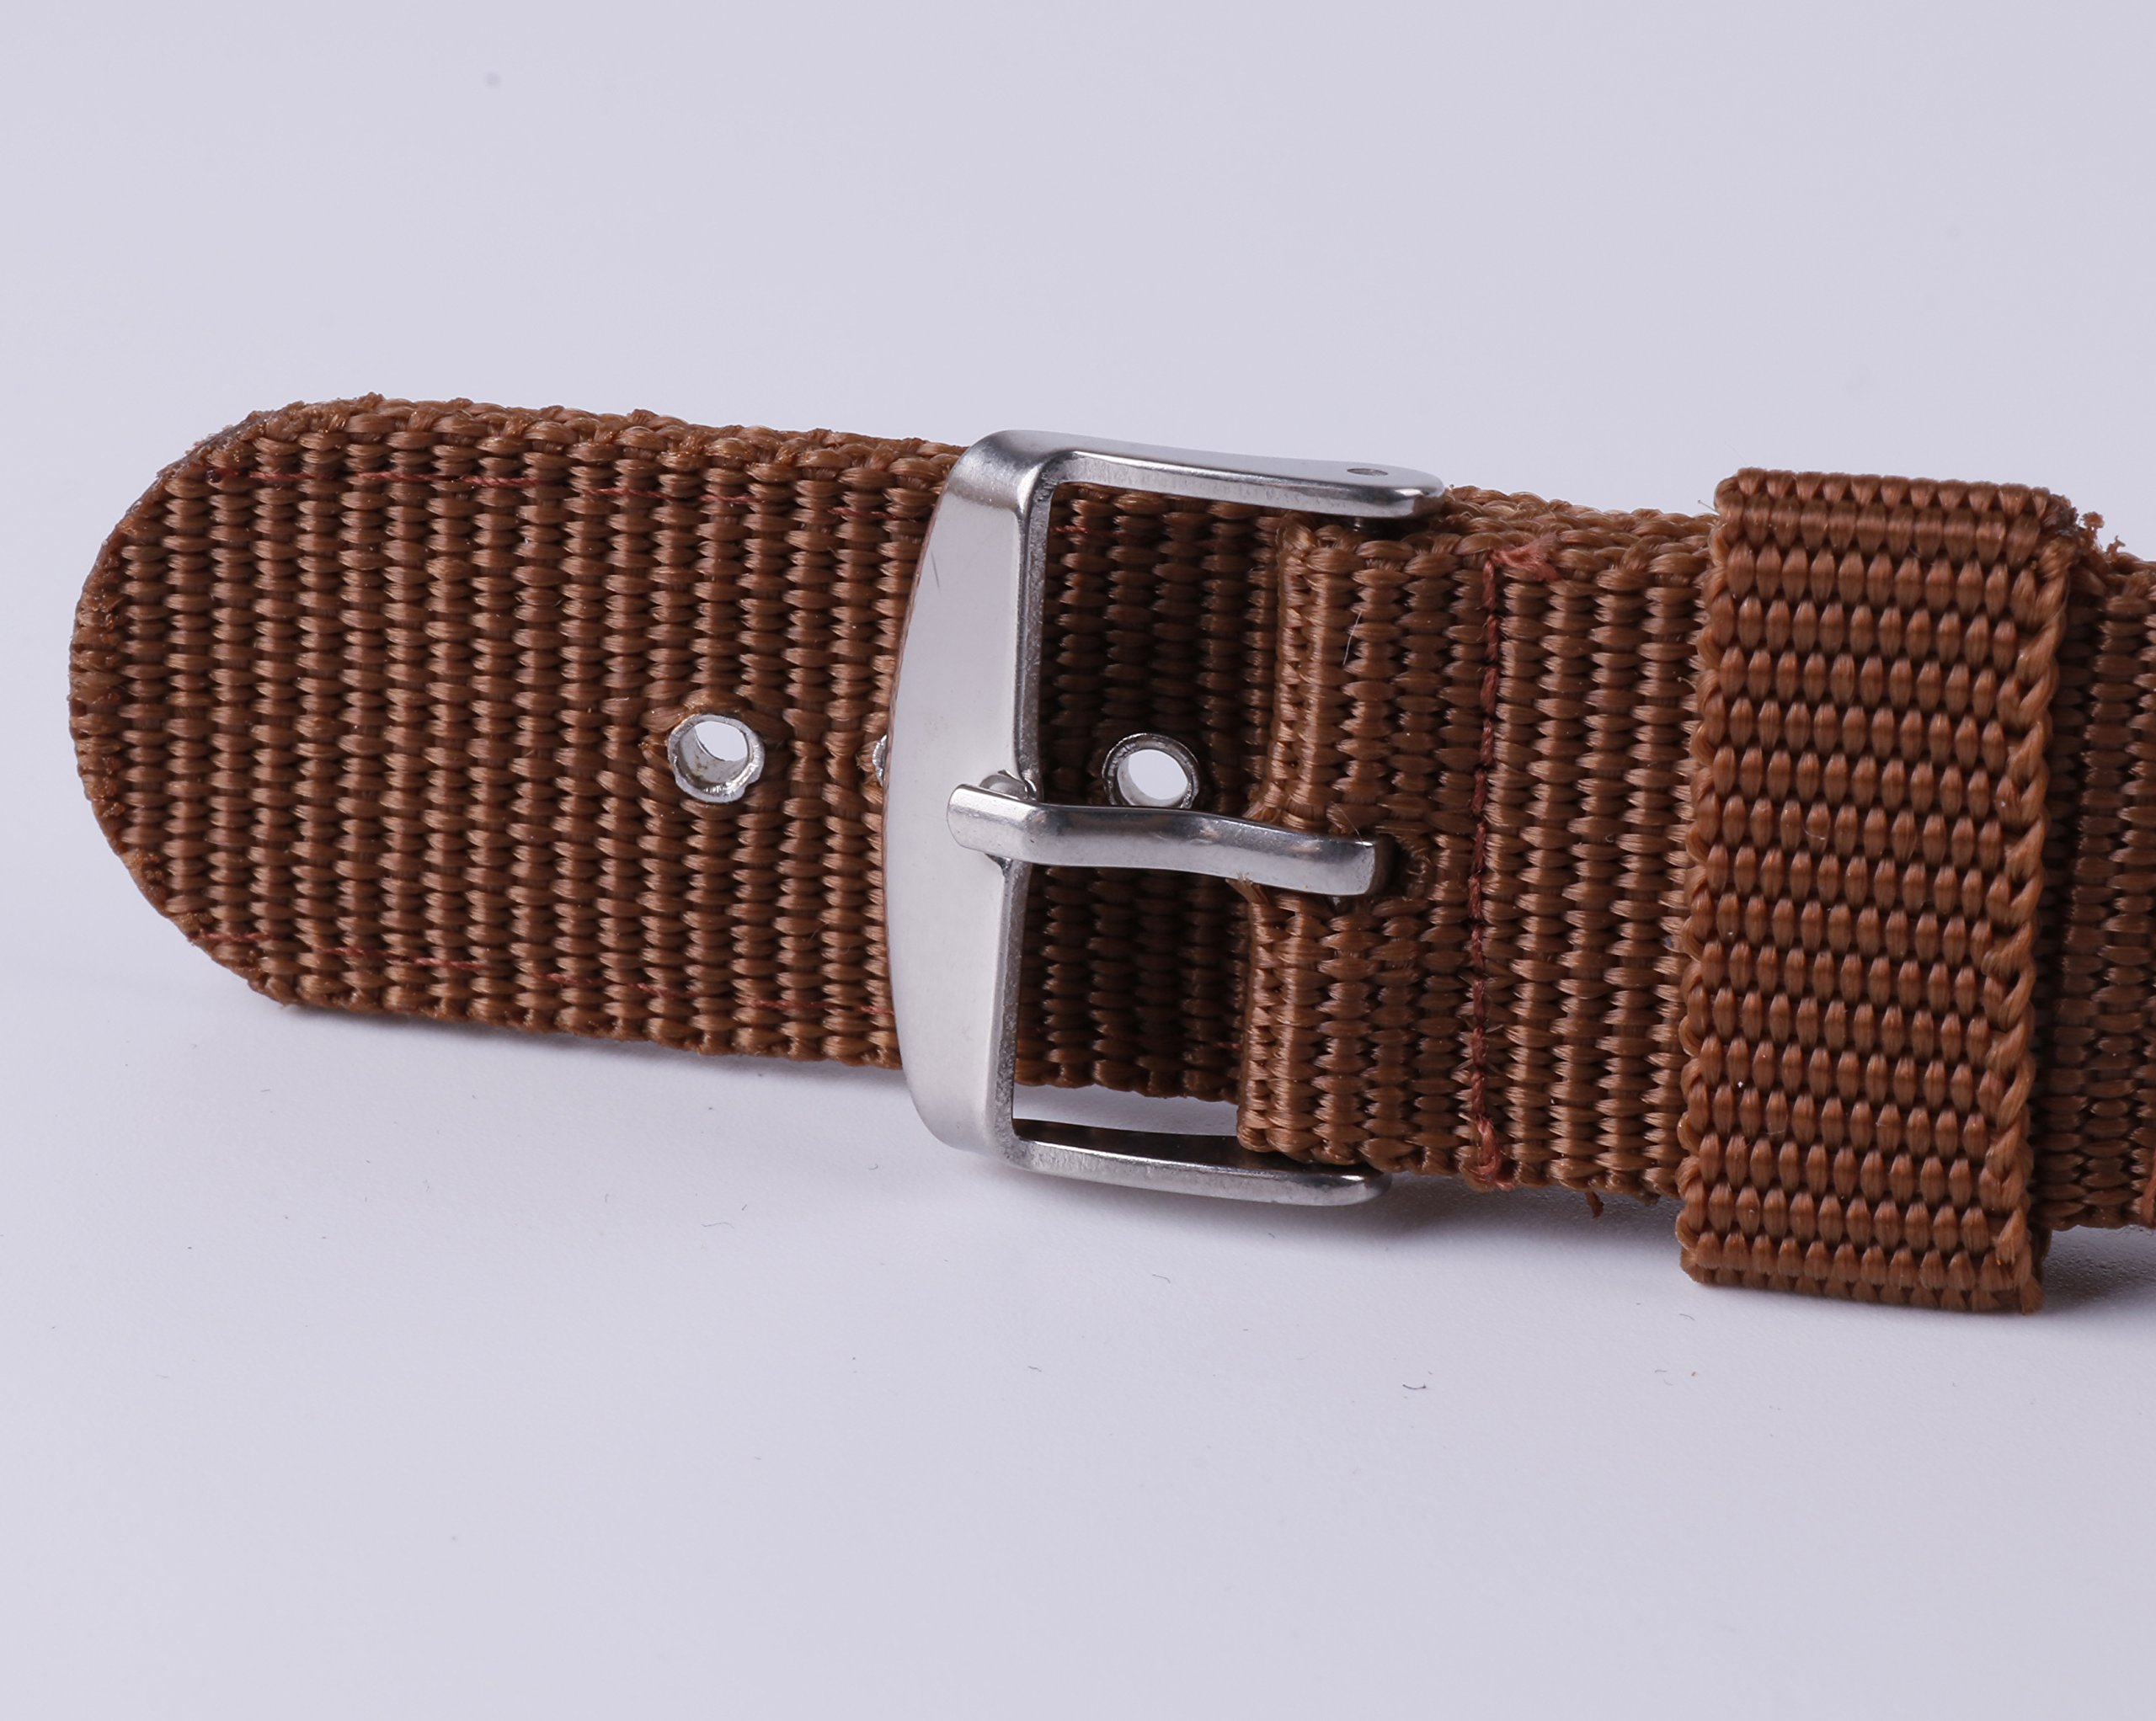 4pcs Nylon Watch Bands 16mm 18mm 20mm 22mm 24mm Premium Replacement NATO Style Watch Straps for Women Men by BONSTRAP (Image #6)